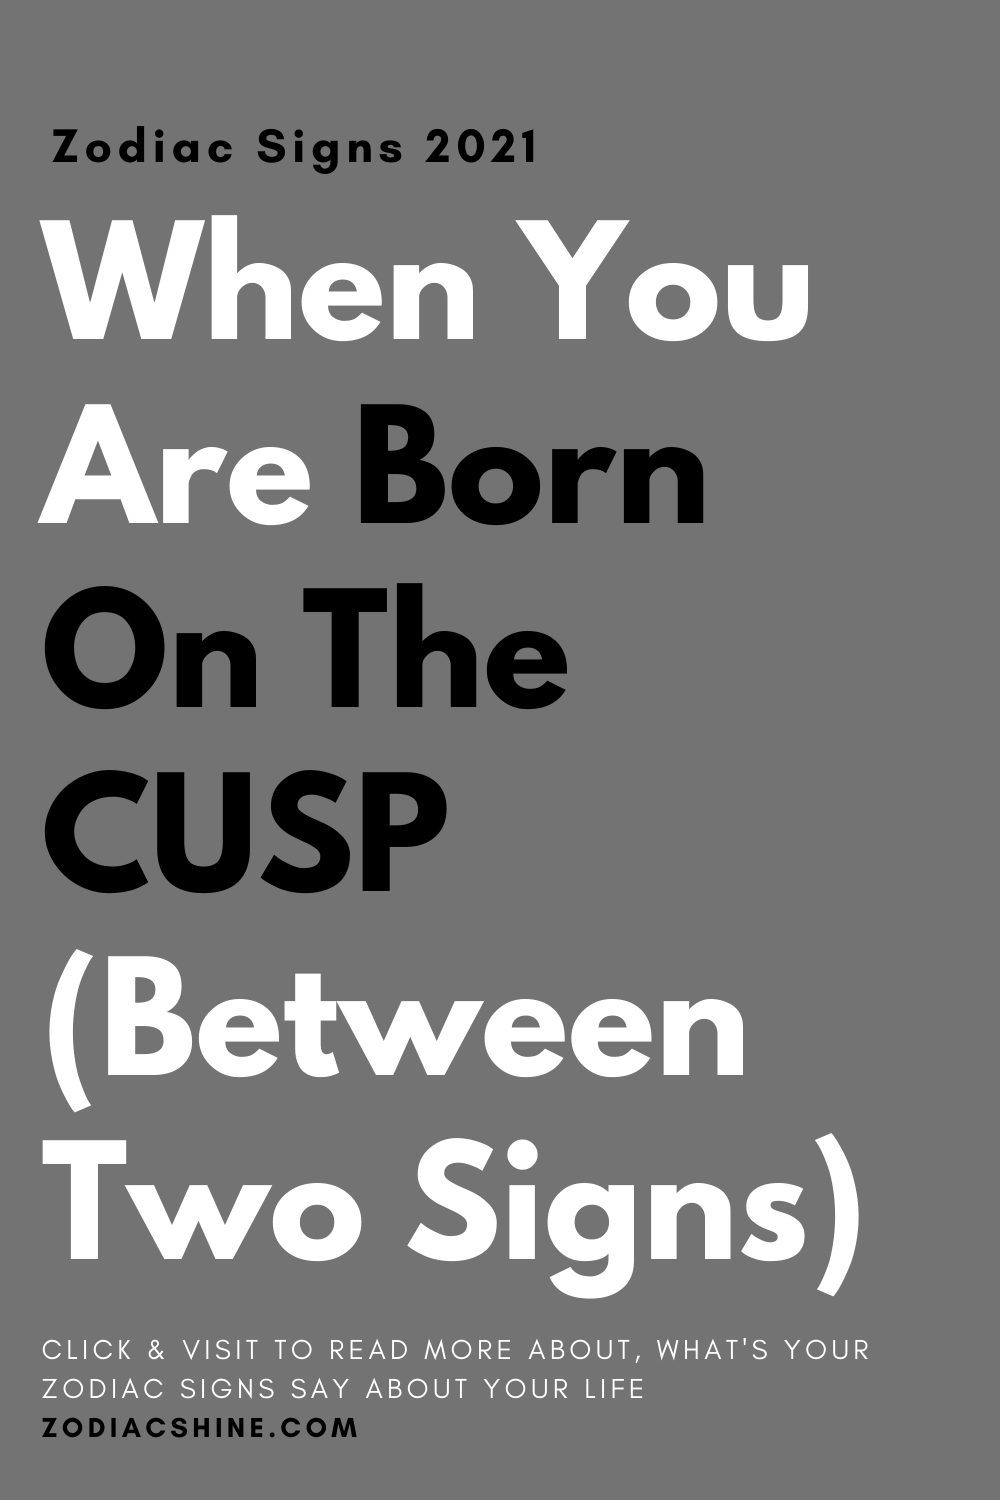 When You Are Born On The CUSP (Between Two Signs)